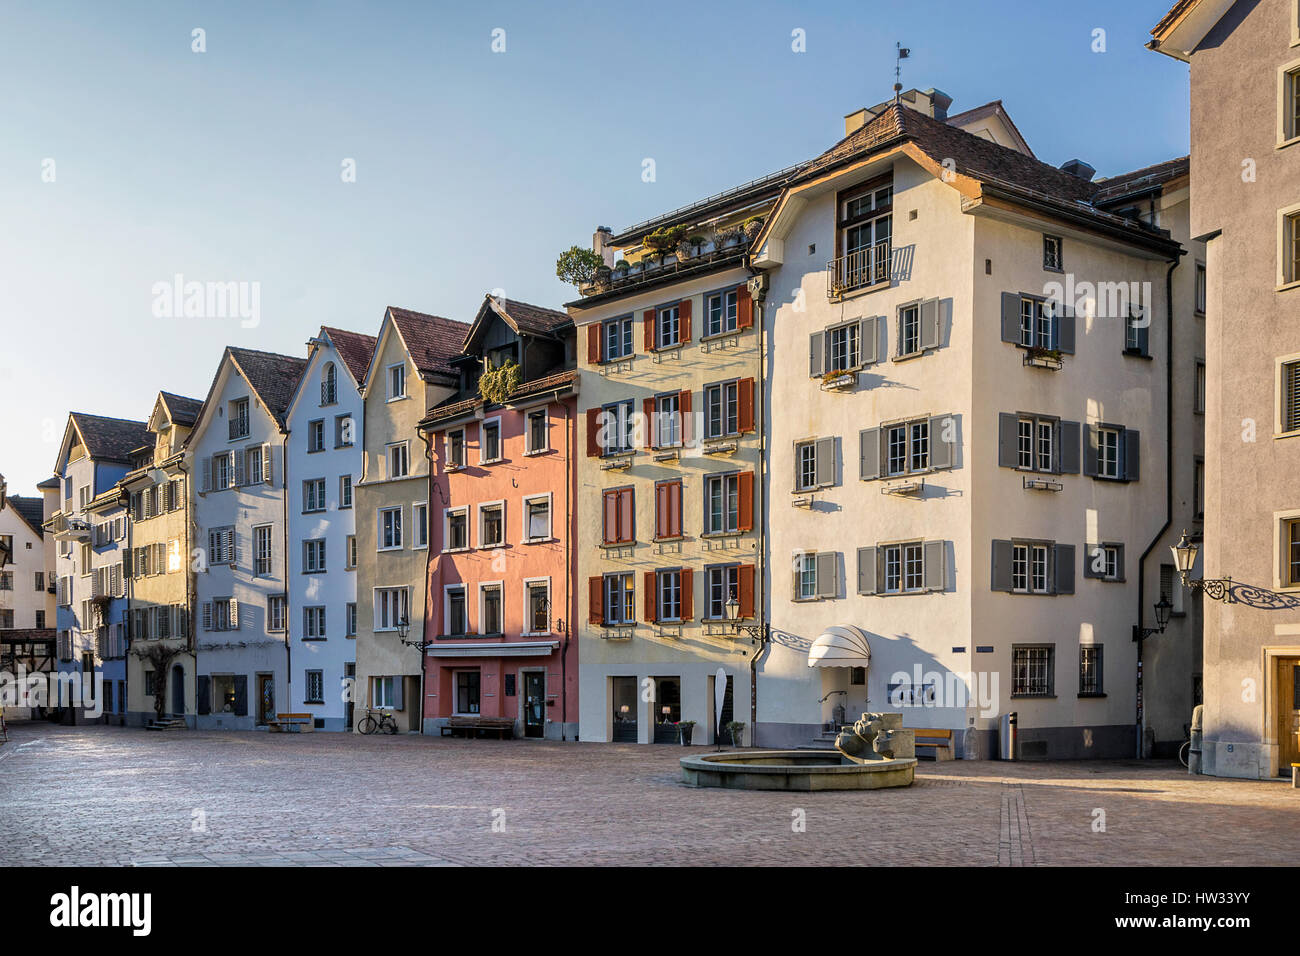 Chur in south east Switzerland - Stock Image